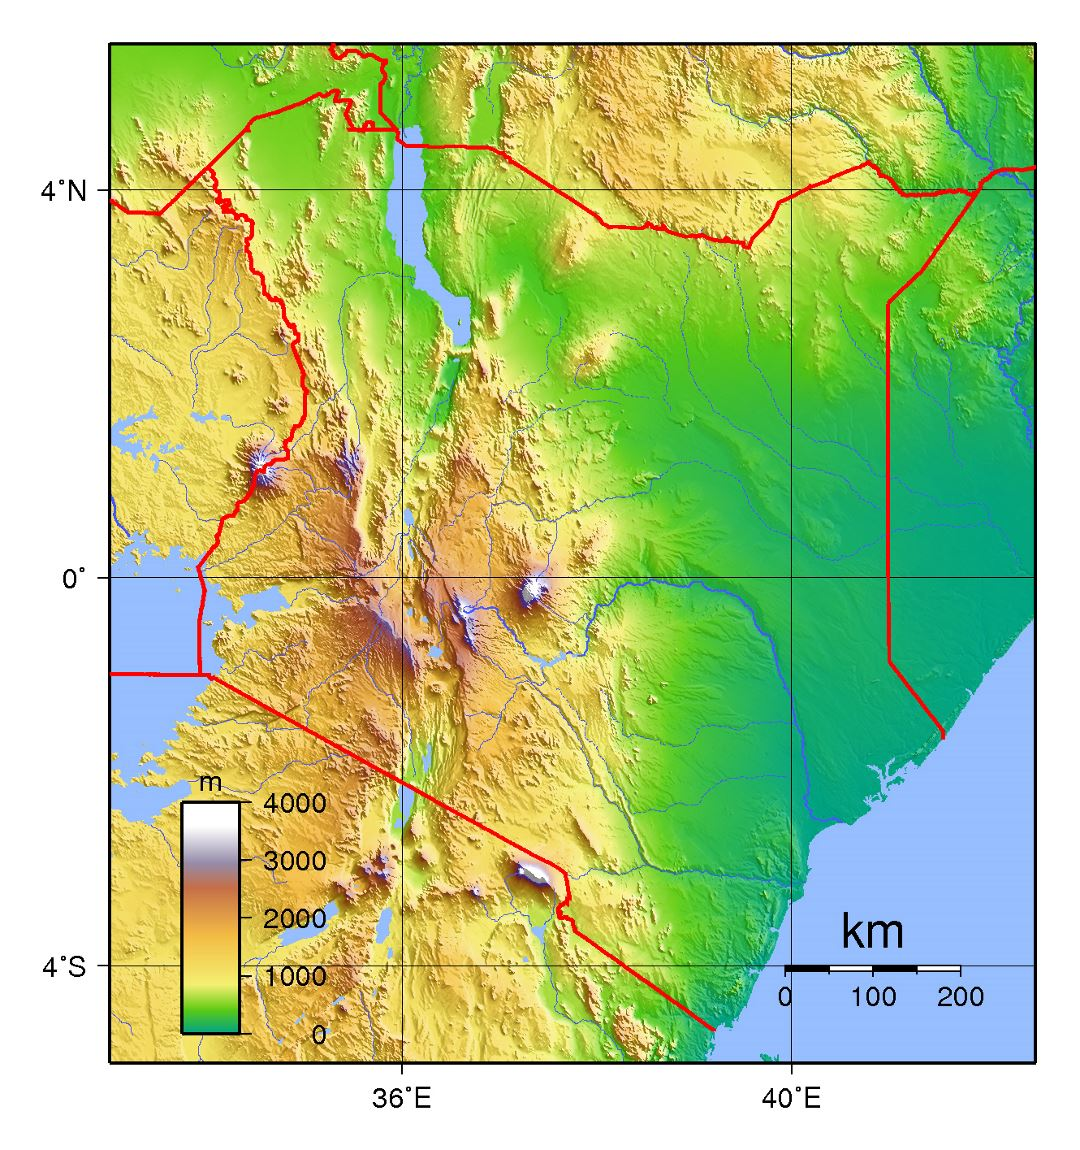 Detailed topographical map of Kenya